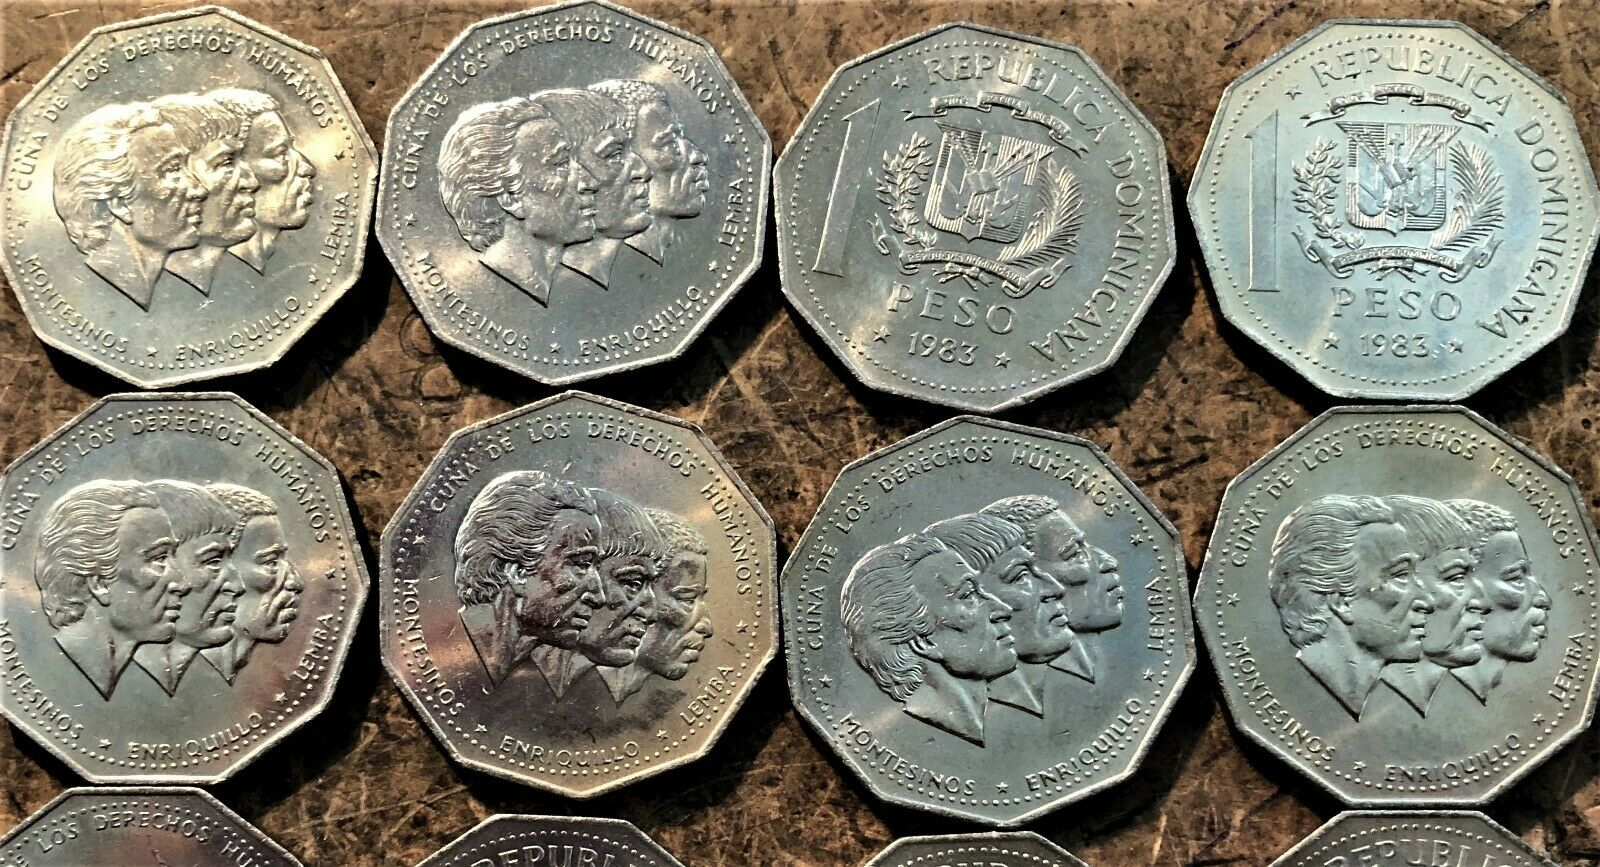 Wholesale 10 UNC Multi-Sided Human Rights Coins; Dominican Rep 1 Peso KM # 63.1